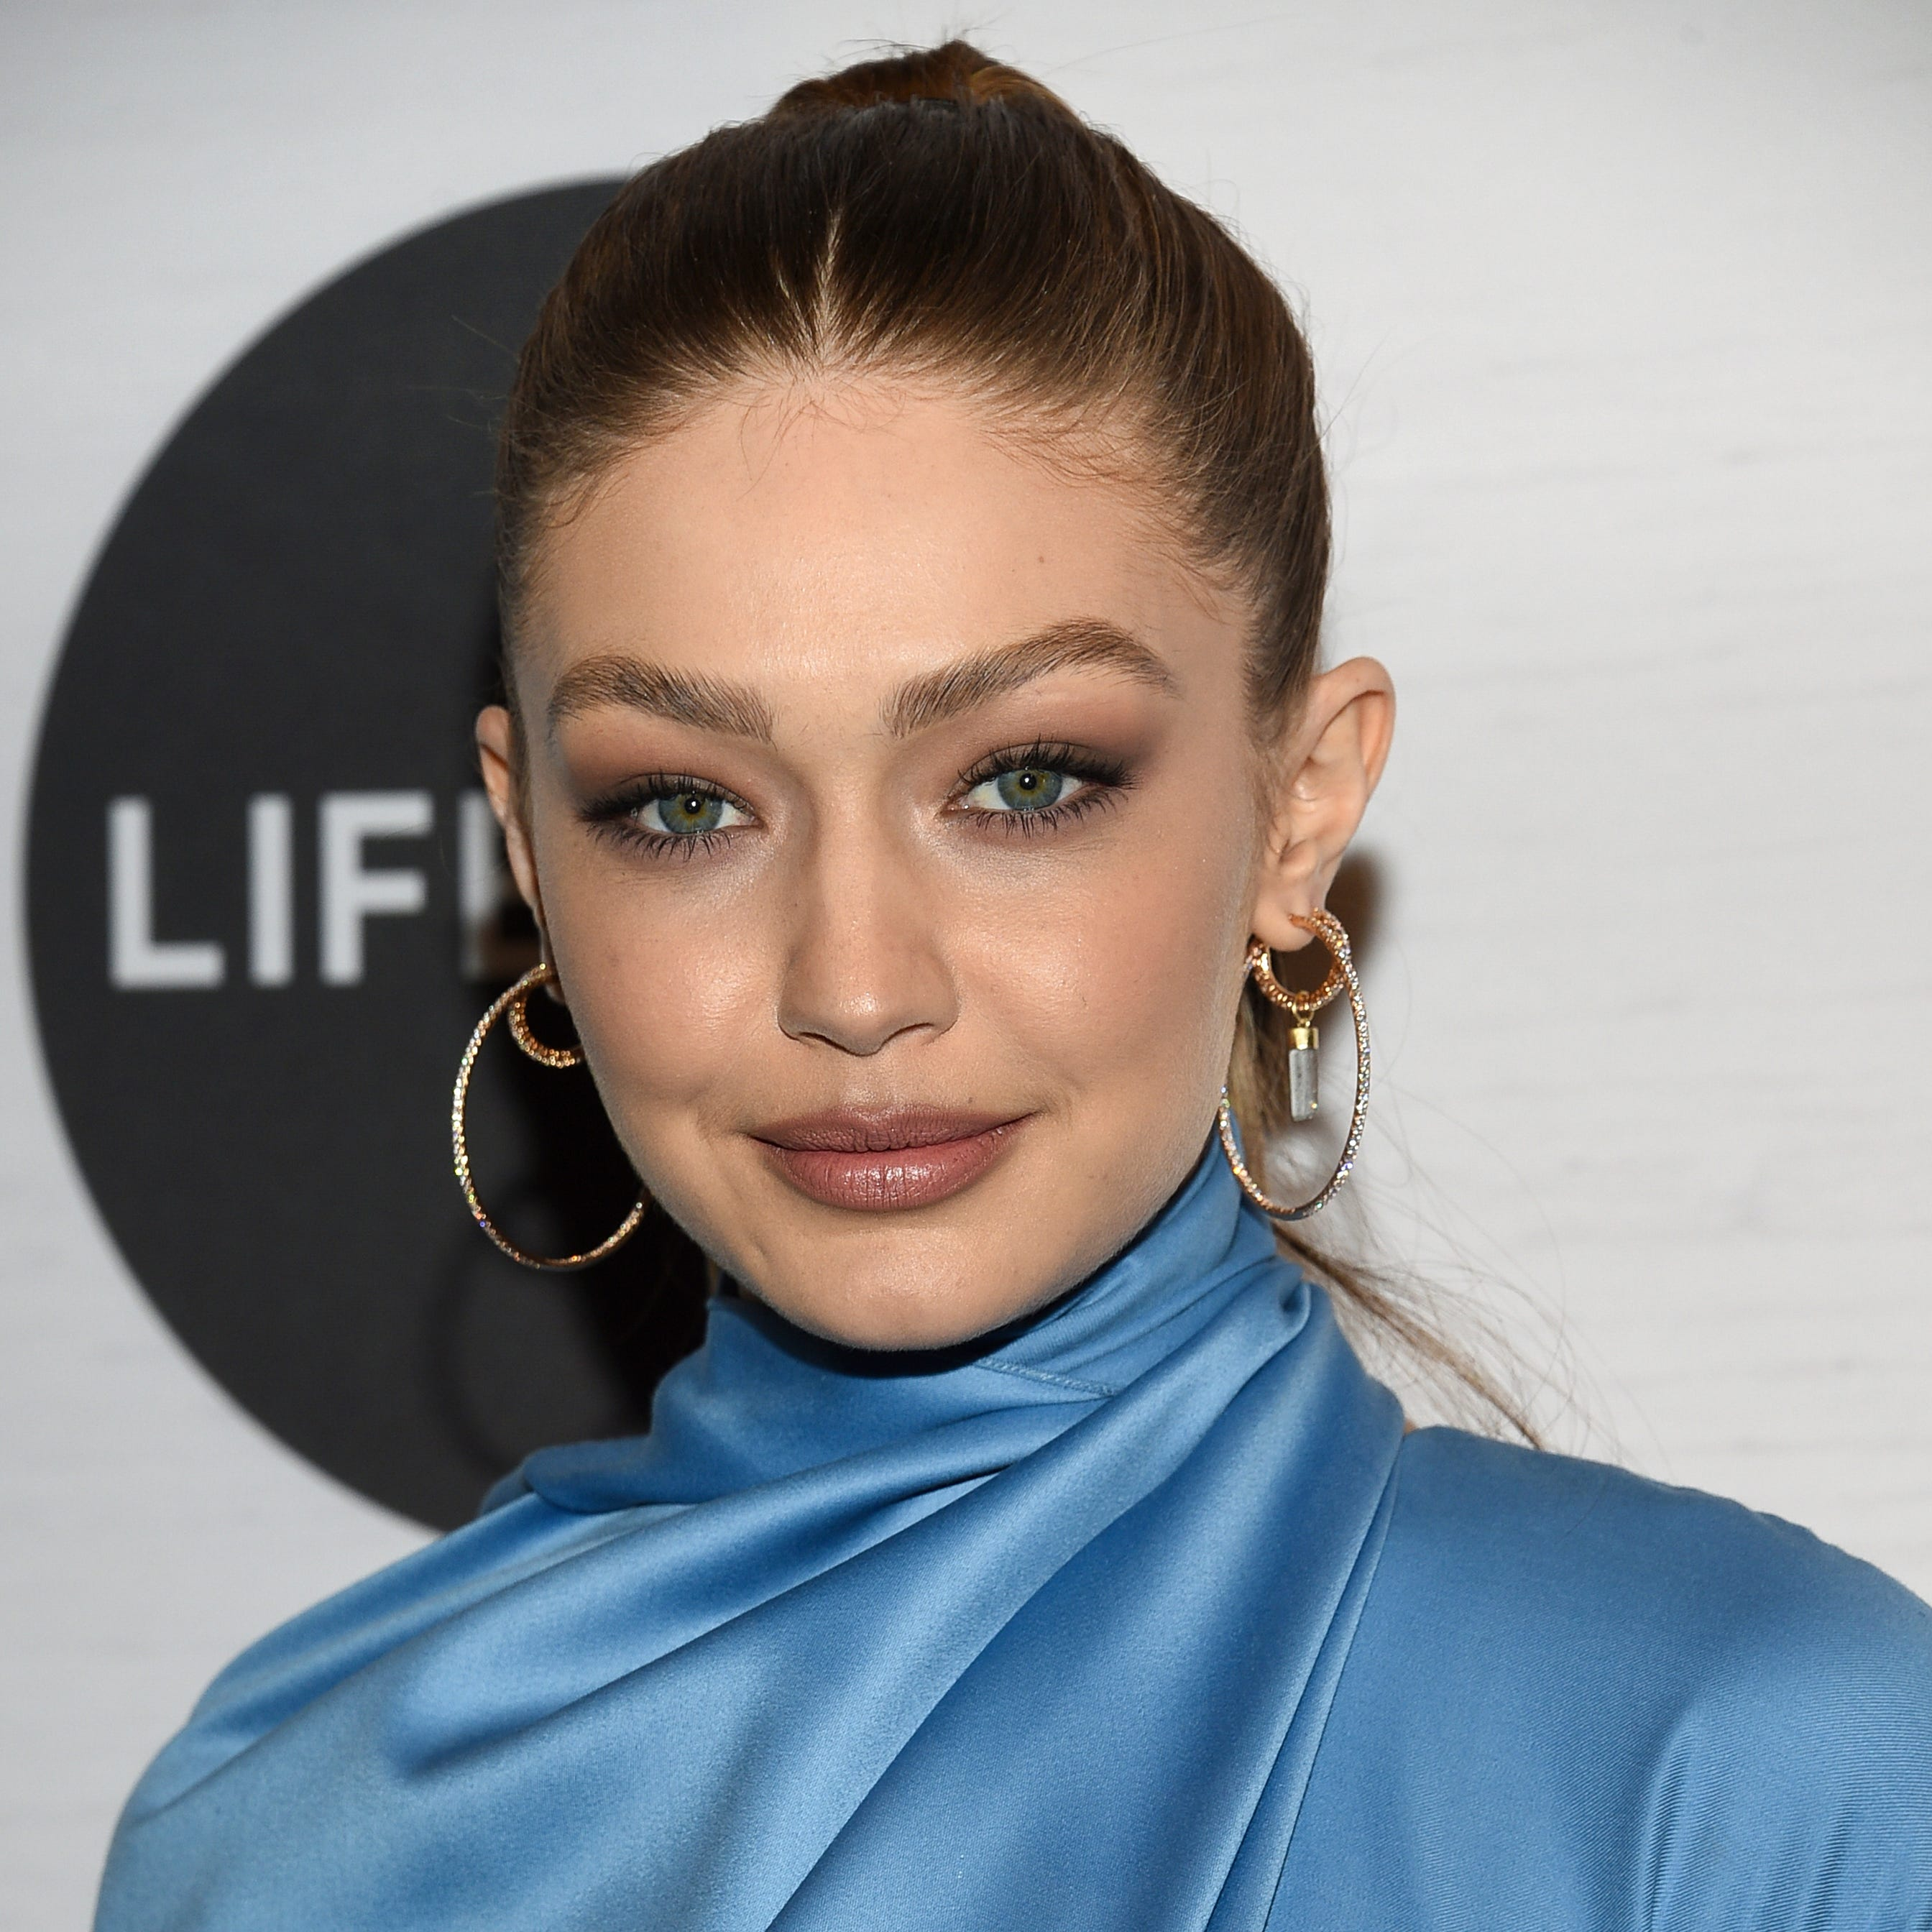 Honoree Gigi Hadid attends Variety's Power of Women: New York presented by Lifetime at Cipriani 42nd Street on Friday, April 5, 2019, in New York. (Photo by Evan Agostini/Invision/AP) ORG XMIT: NYEA125